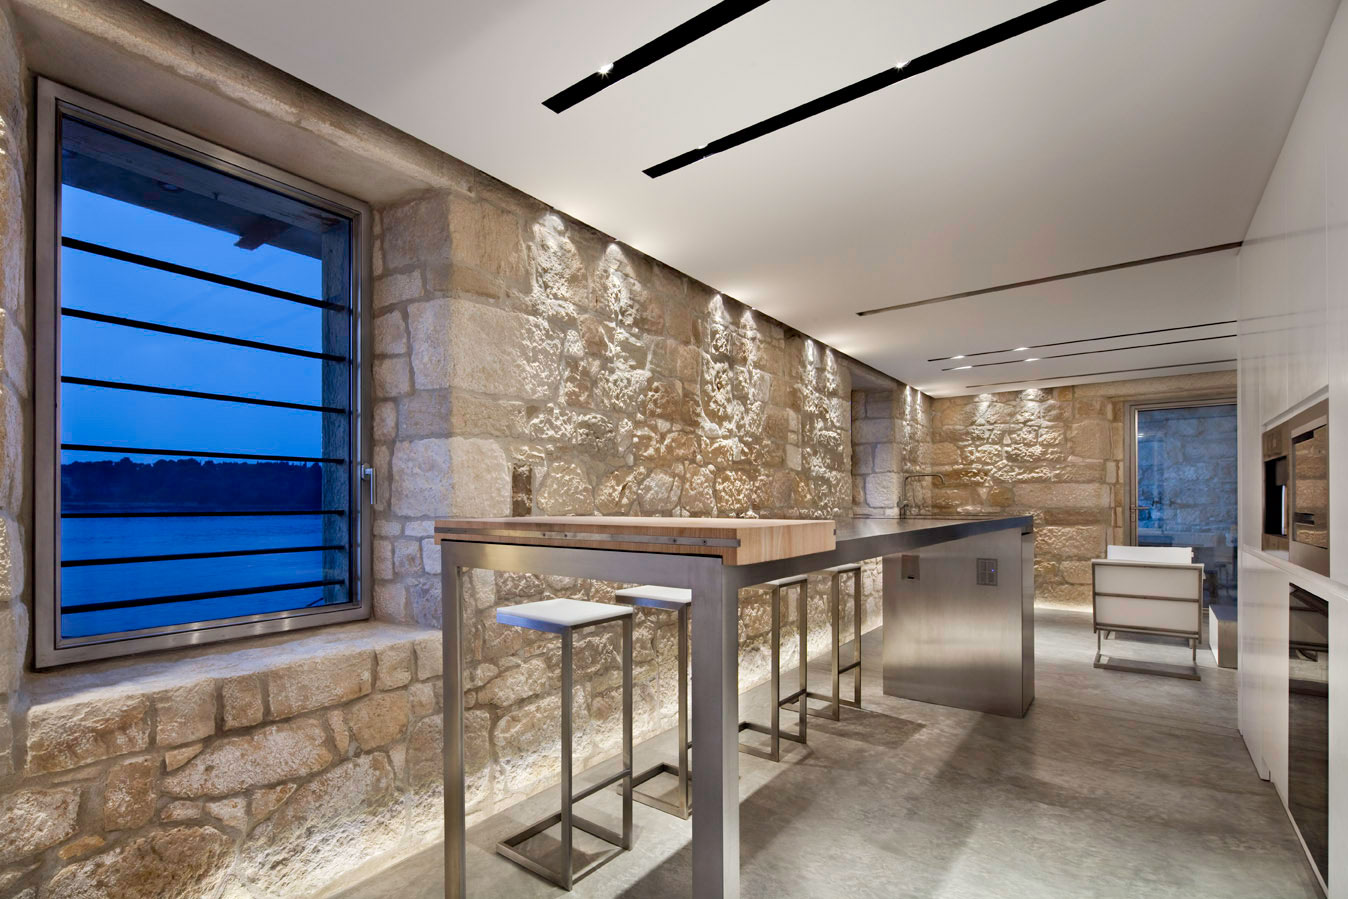 Bar, Renovation of an 18th Century Building in Rovinj, Croatia